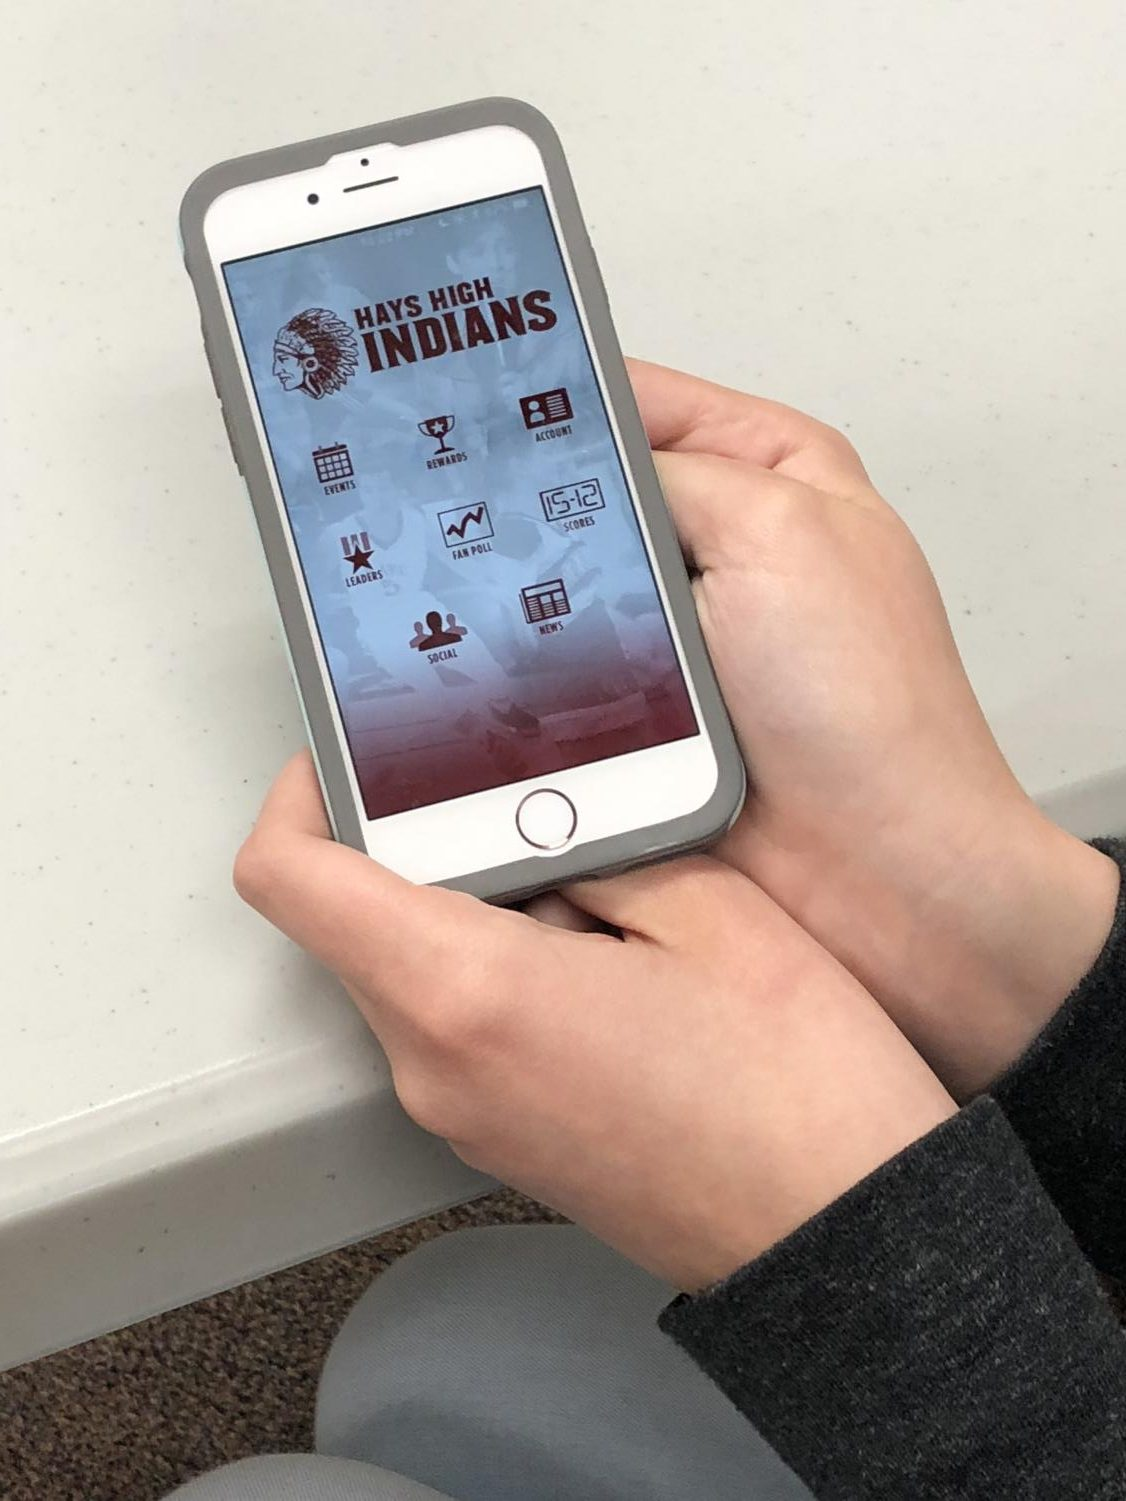 On the StuCo app, students are able to check into different school events to earn points. They are then able to cash out their points for different prizes.